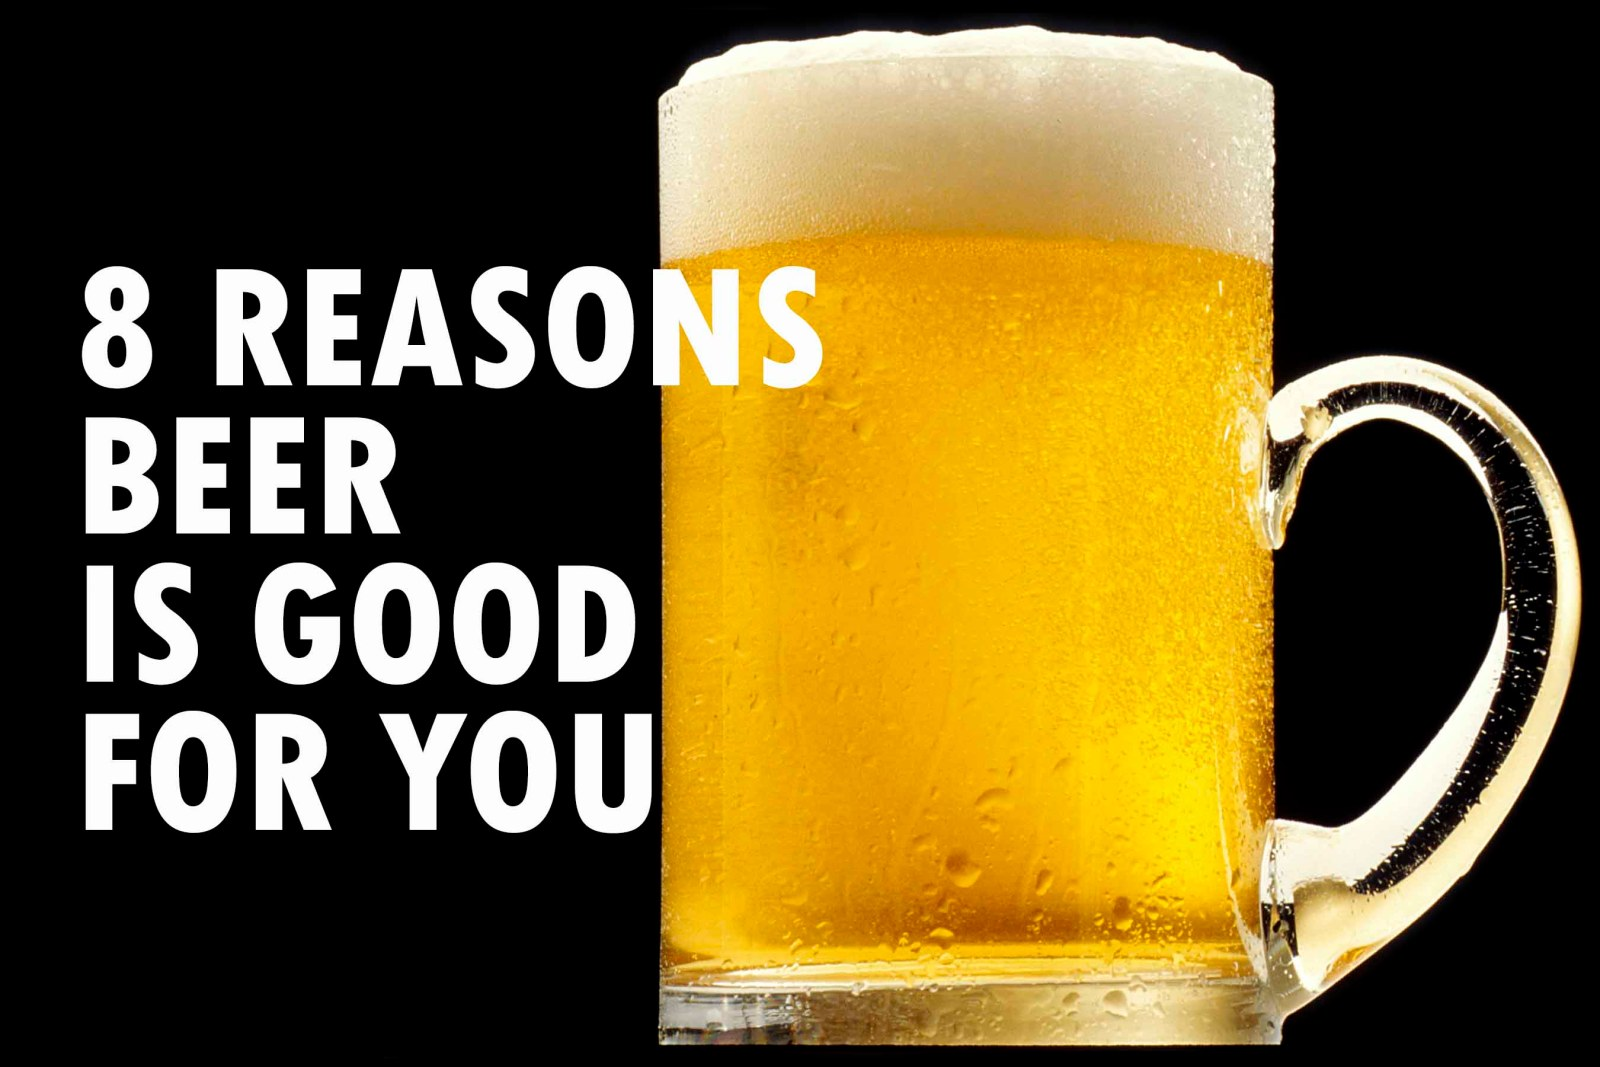 8 Reasons Beer Is Good For You